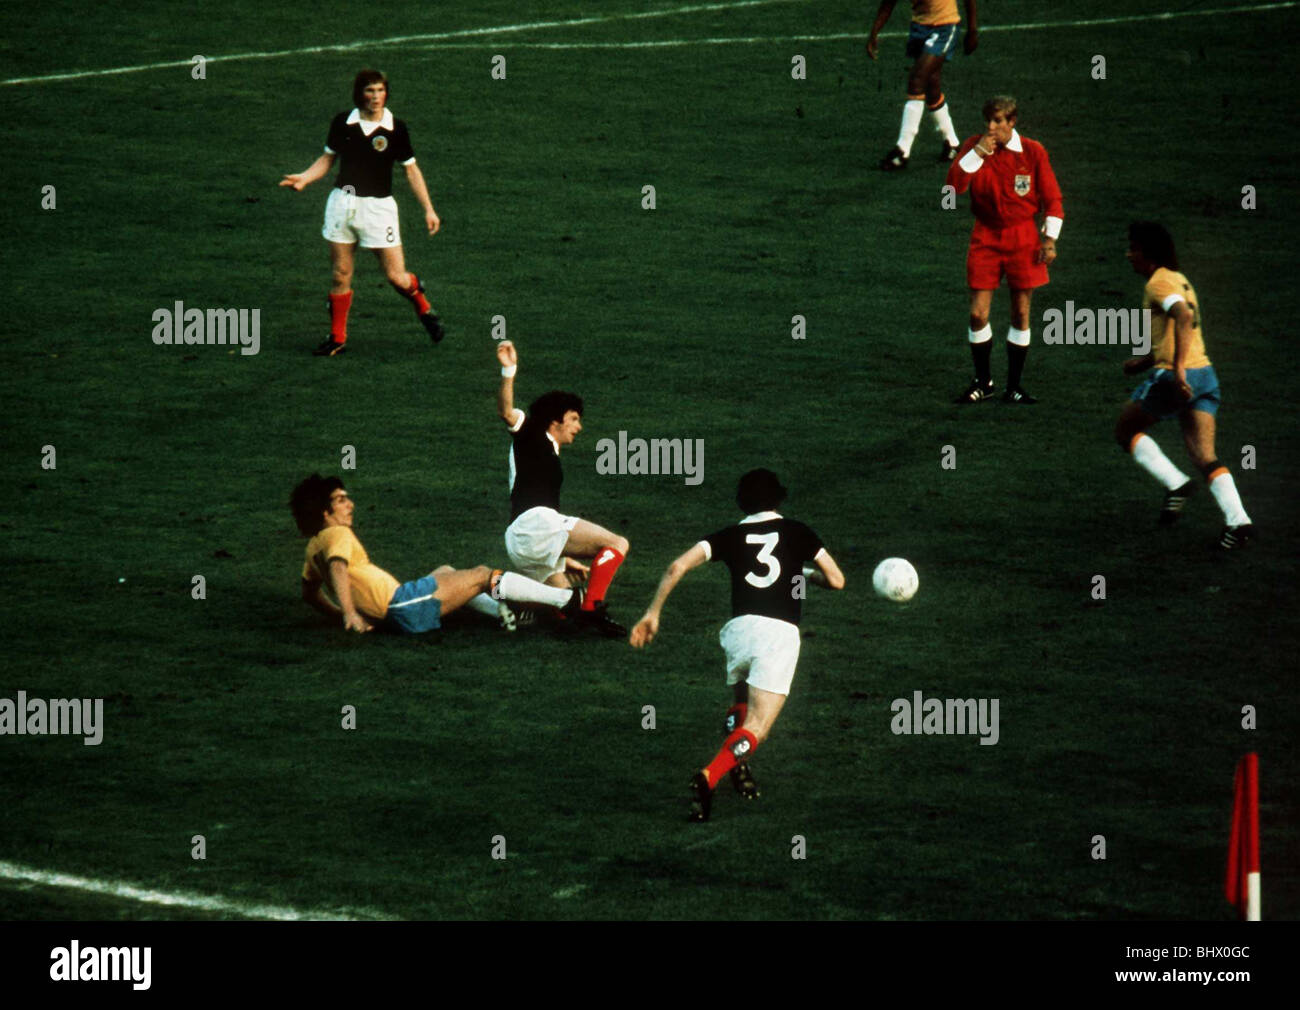 World Cup 1974 Scotland Brazil Morgan fouled referee Van Gemert blows whistle - Stock Image